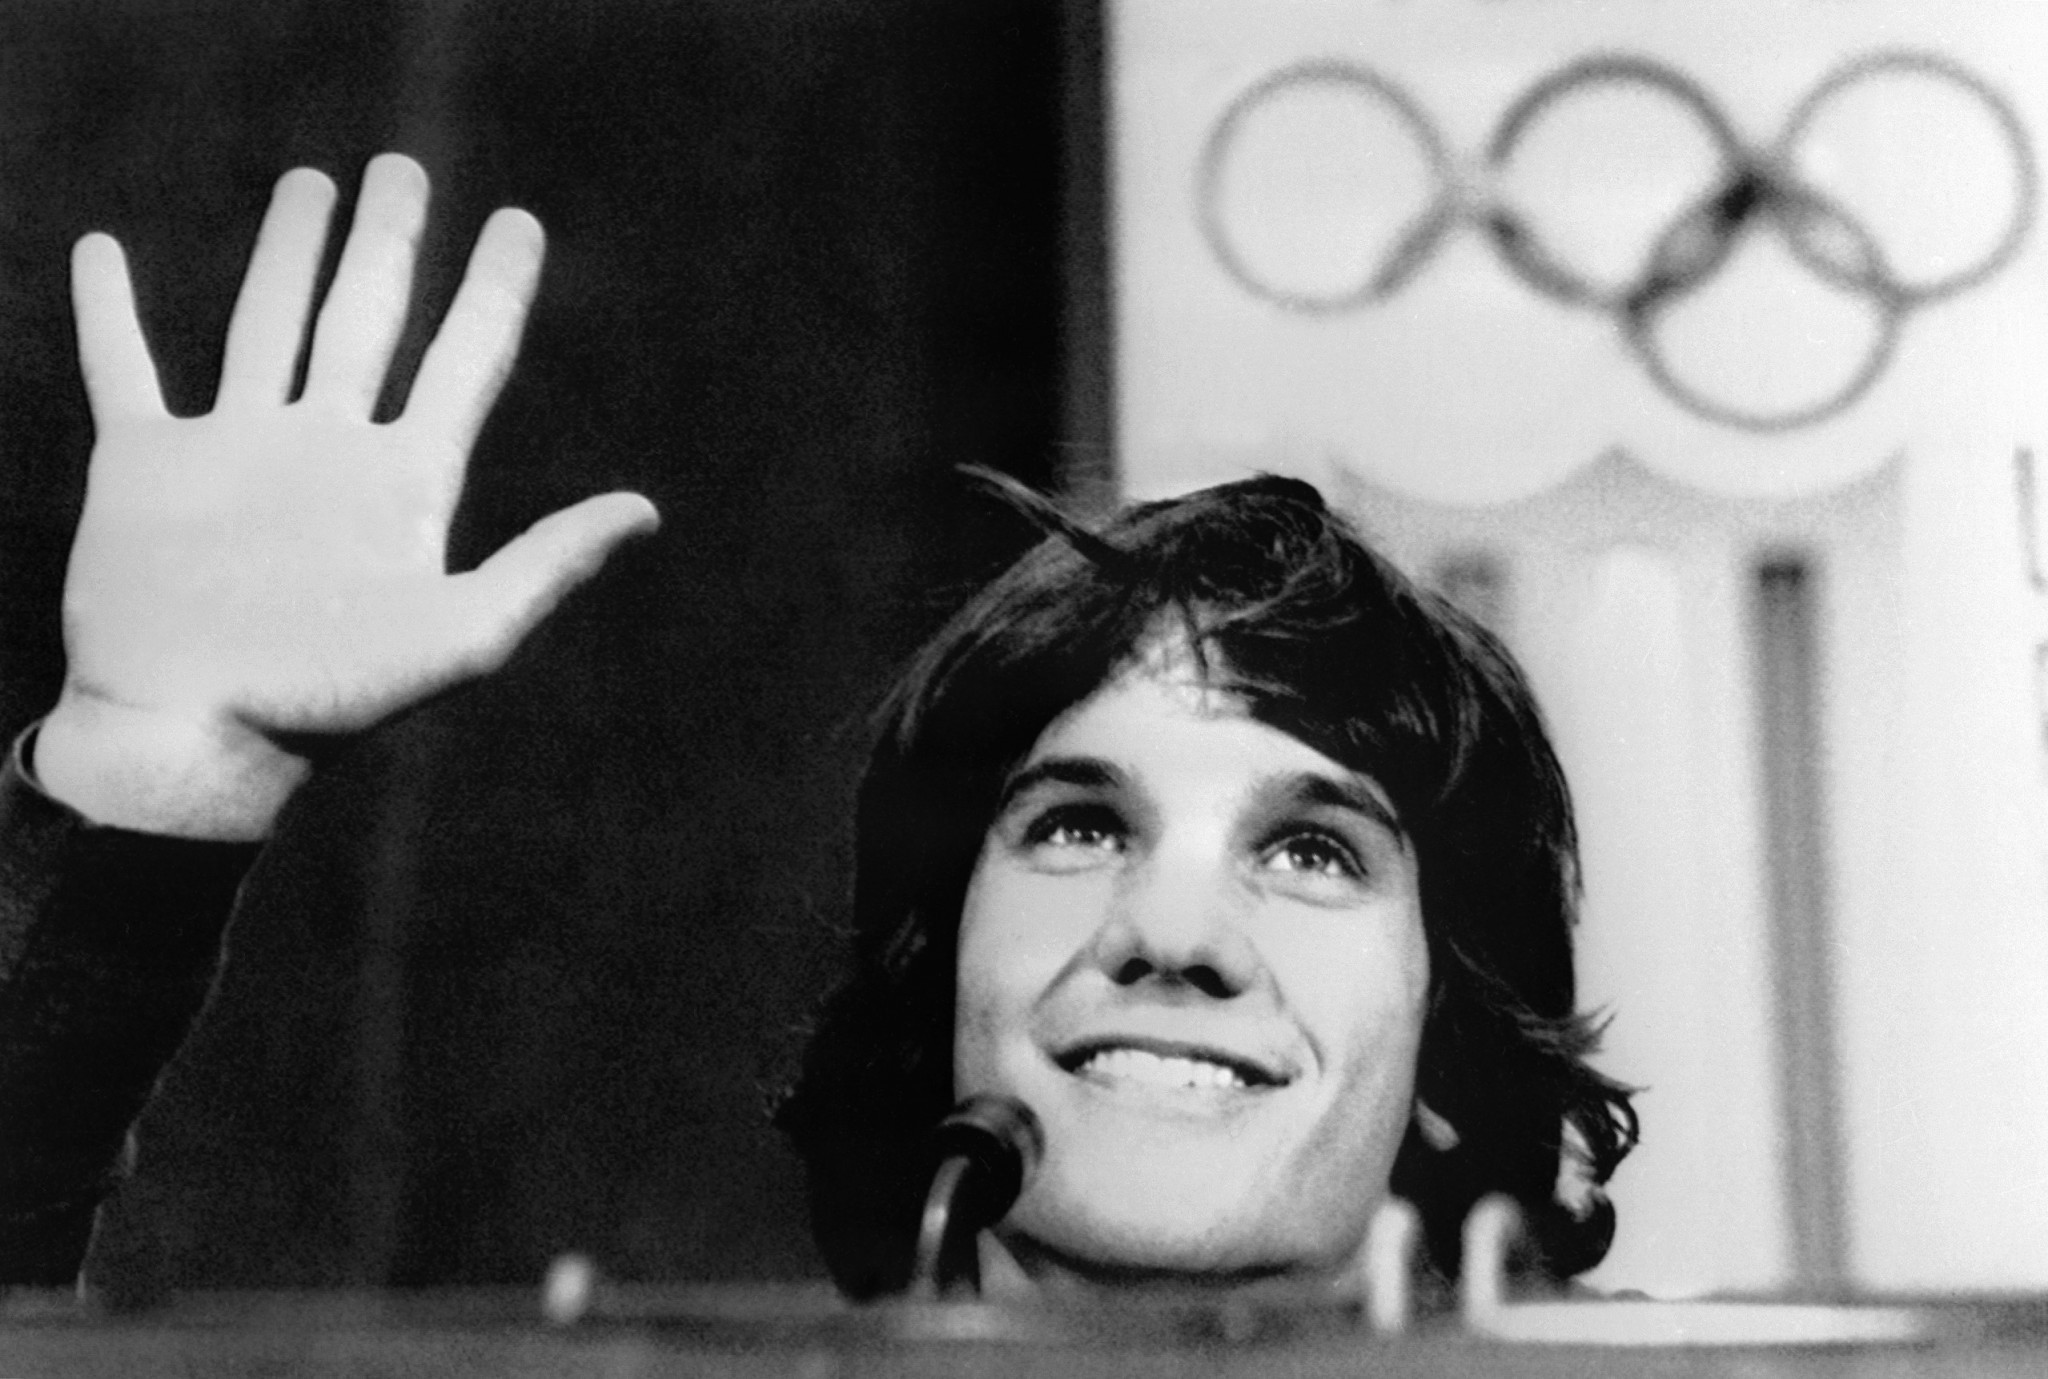 Eric Heiden acknowledges his five speed skating victories at Lake Placid 1980 in a post-Games press conference ©Getty Images